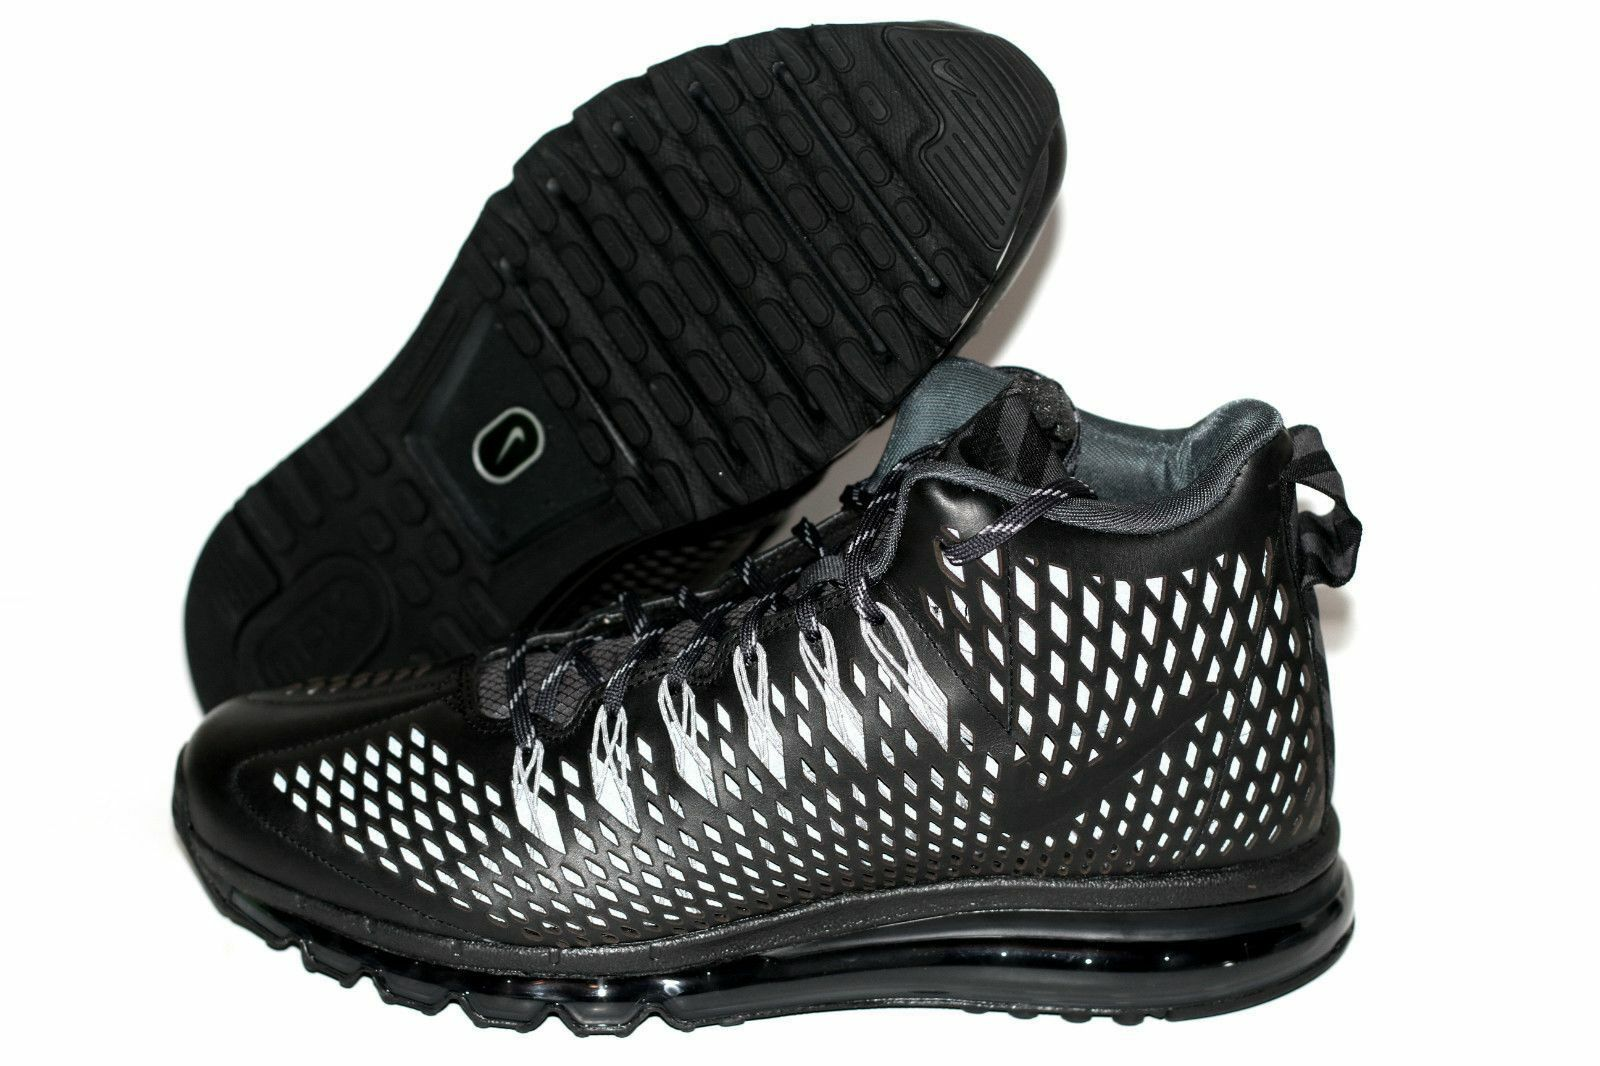 check out f83d3 328cb hot sale NEW NIKE AIR MAX GRAVITON   SIZE 8   MENS 3M SHOES SNEAKERS BOOTS